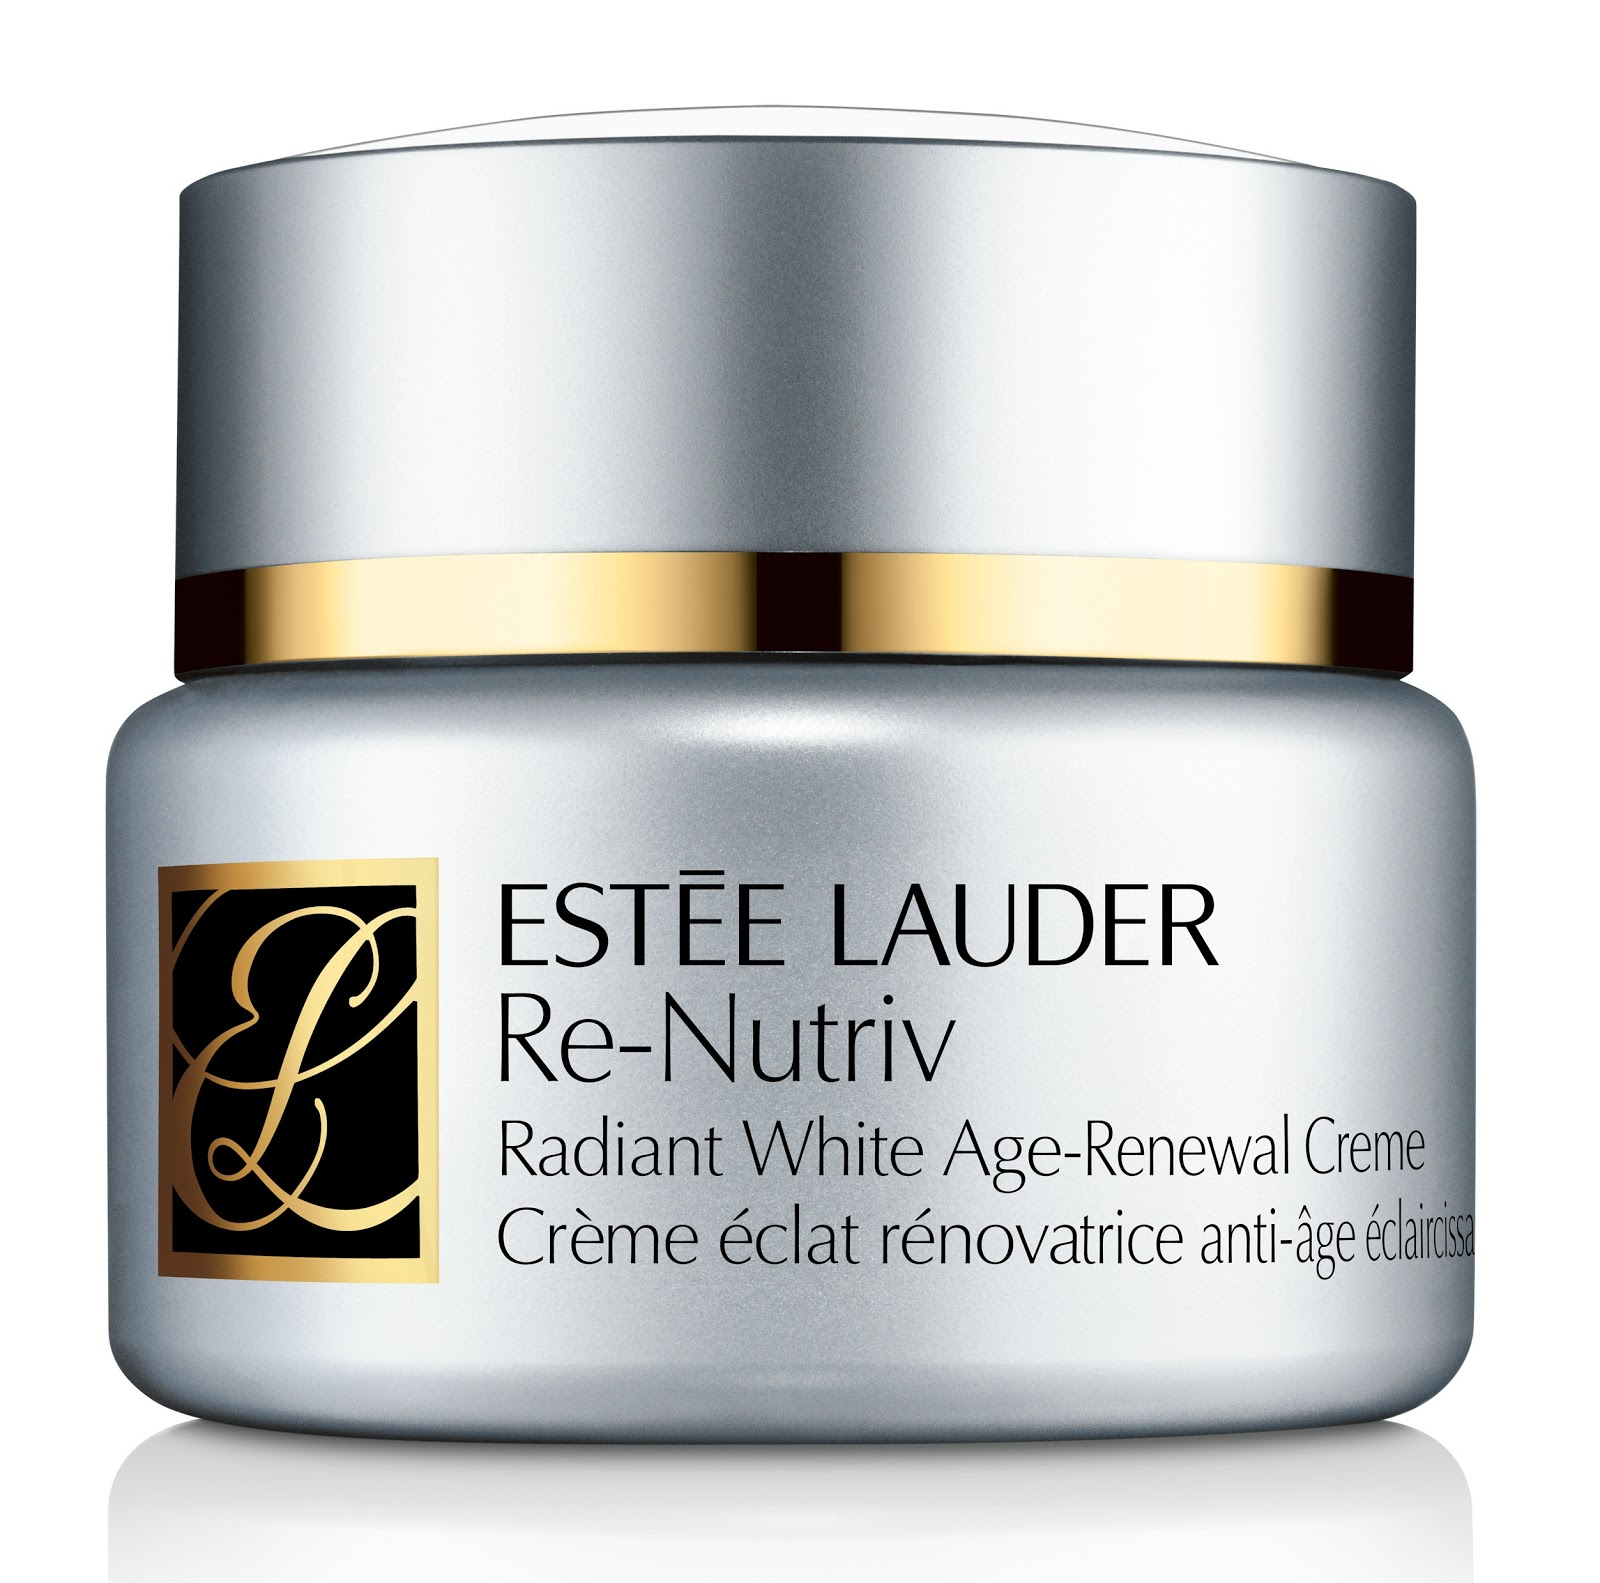 Estee Lauder Re-Nutriv Radiant White Age-Renewal Creme 50ml